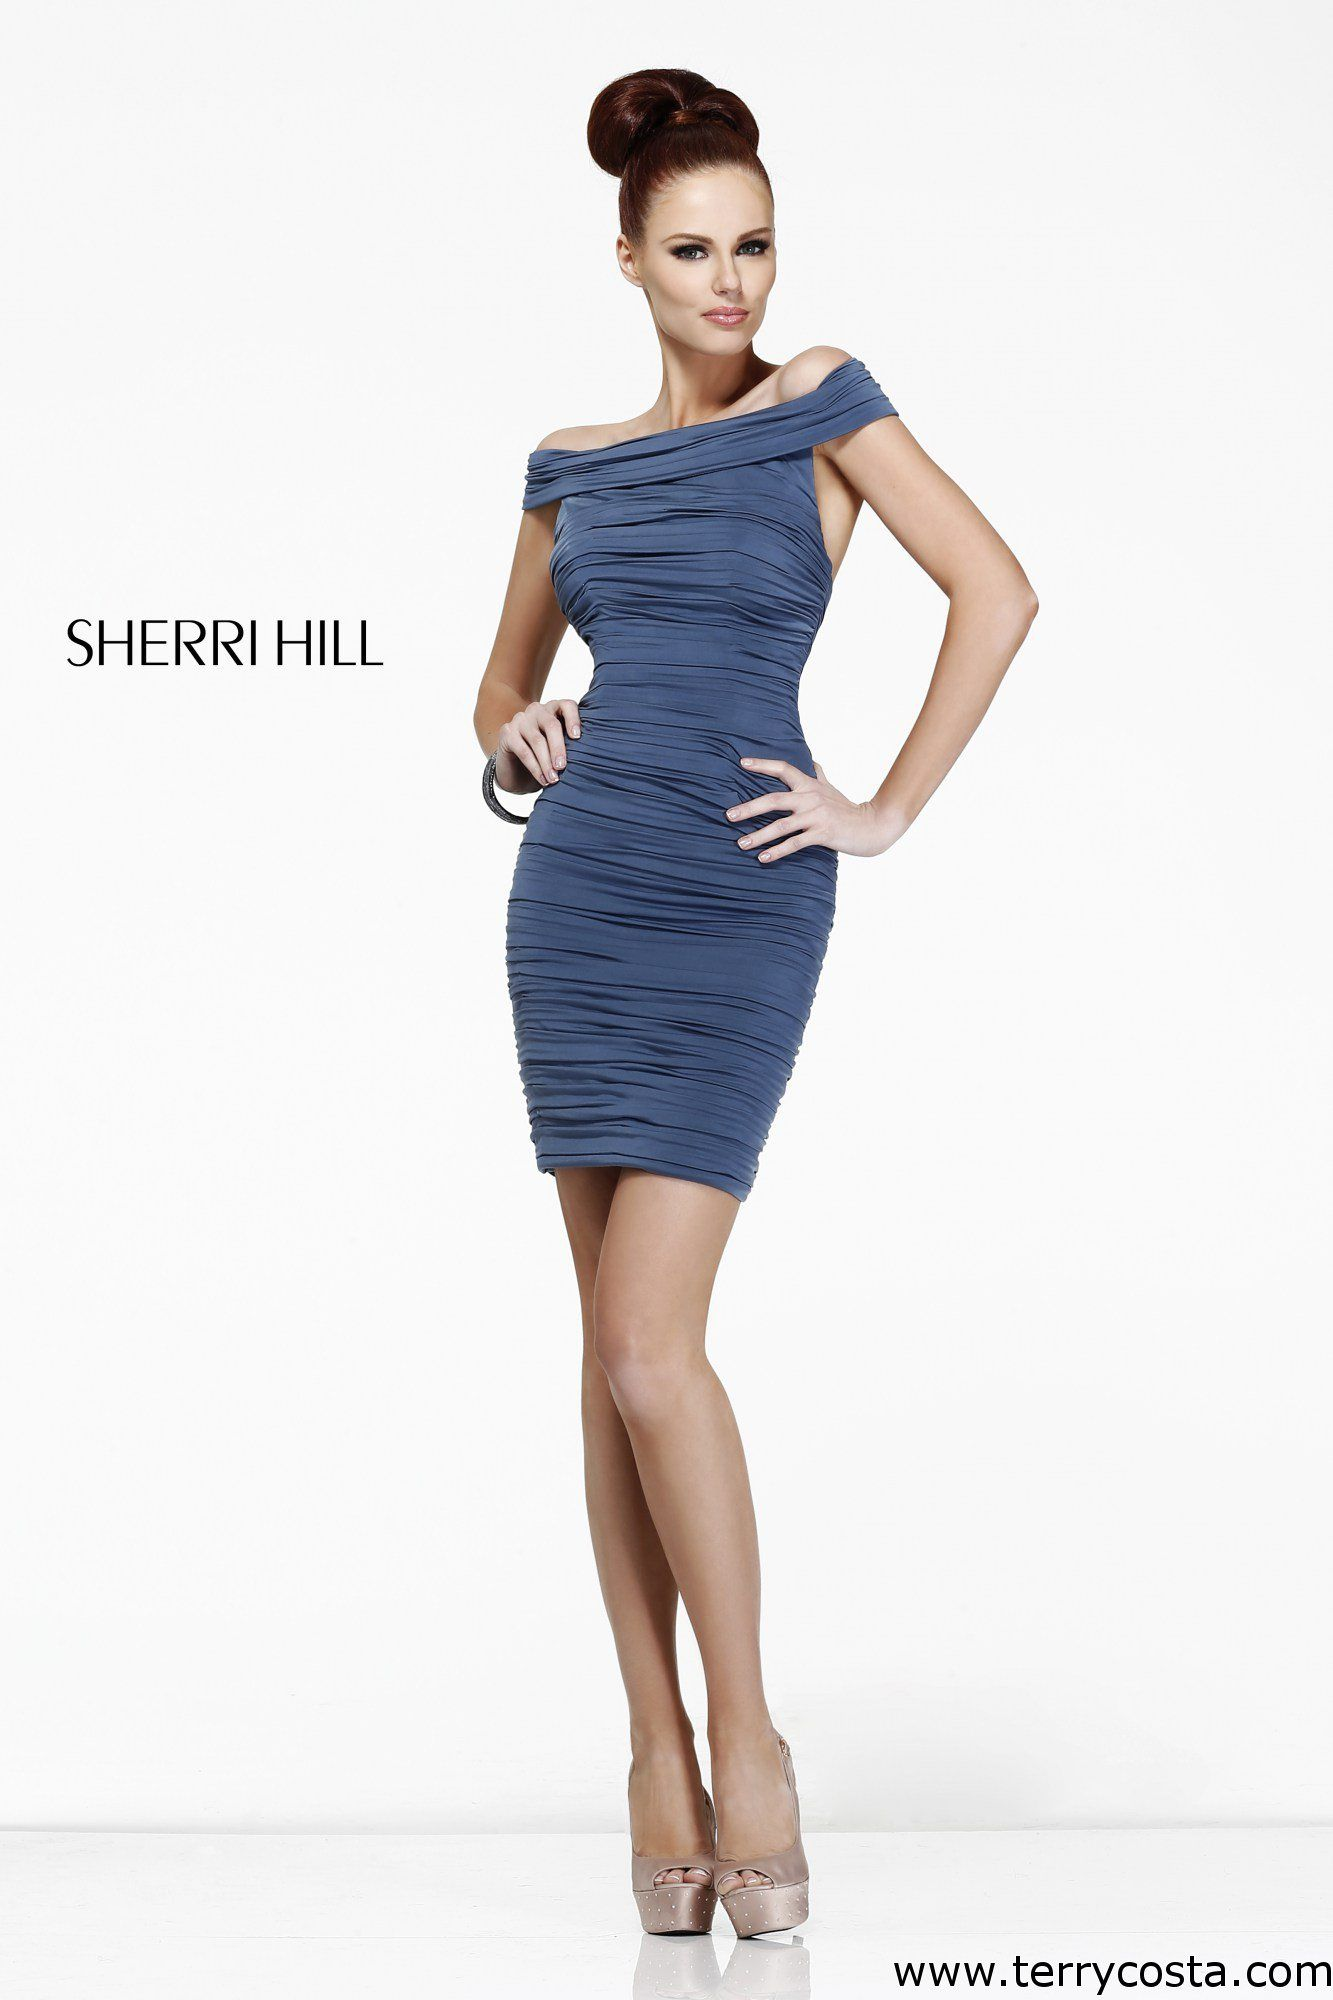 Sherri hill on terry song costa this sherri hill style